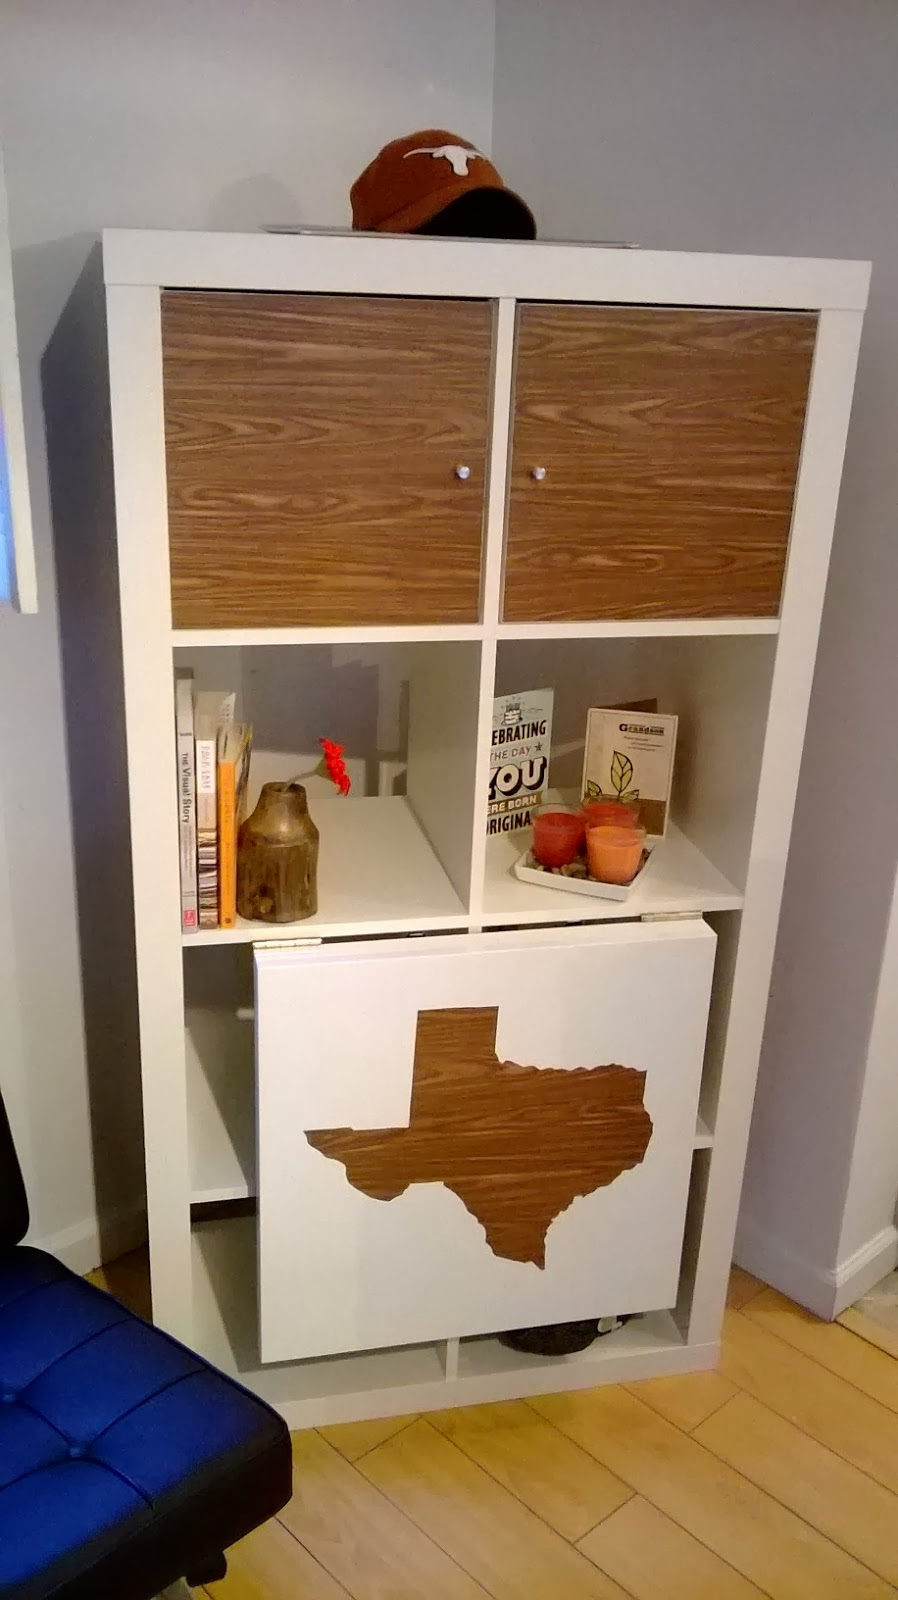 Mi rinc n de sue os estanter a con mesa plegable - Medidas estanteria expedit ...